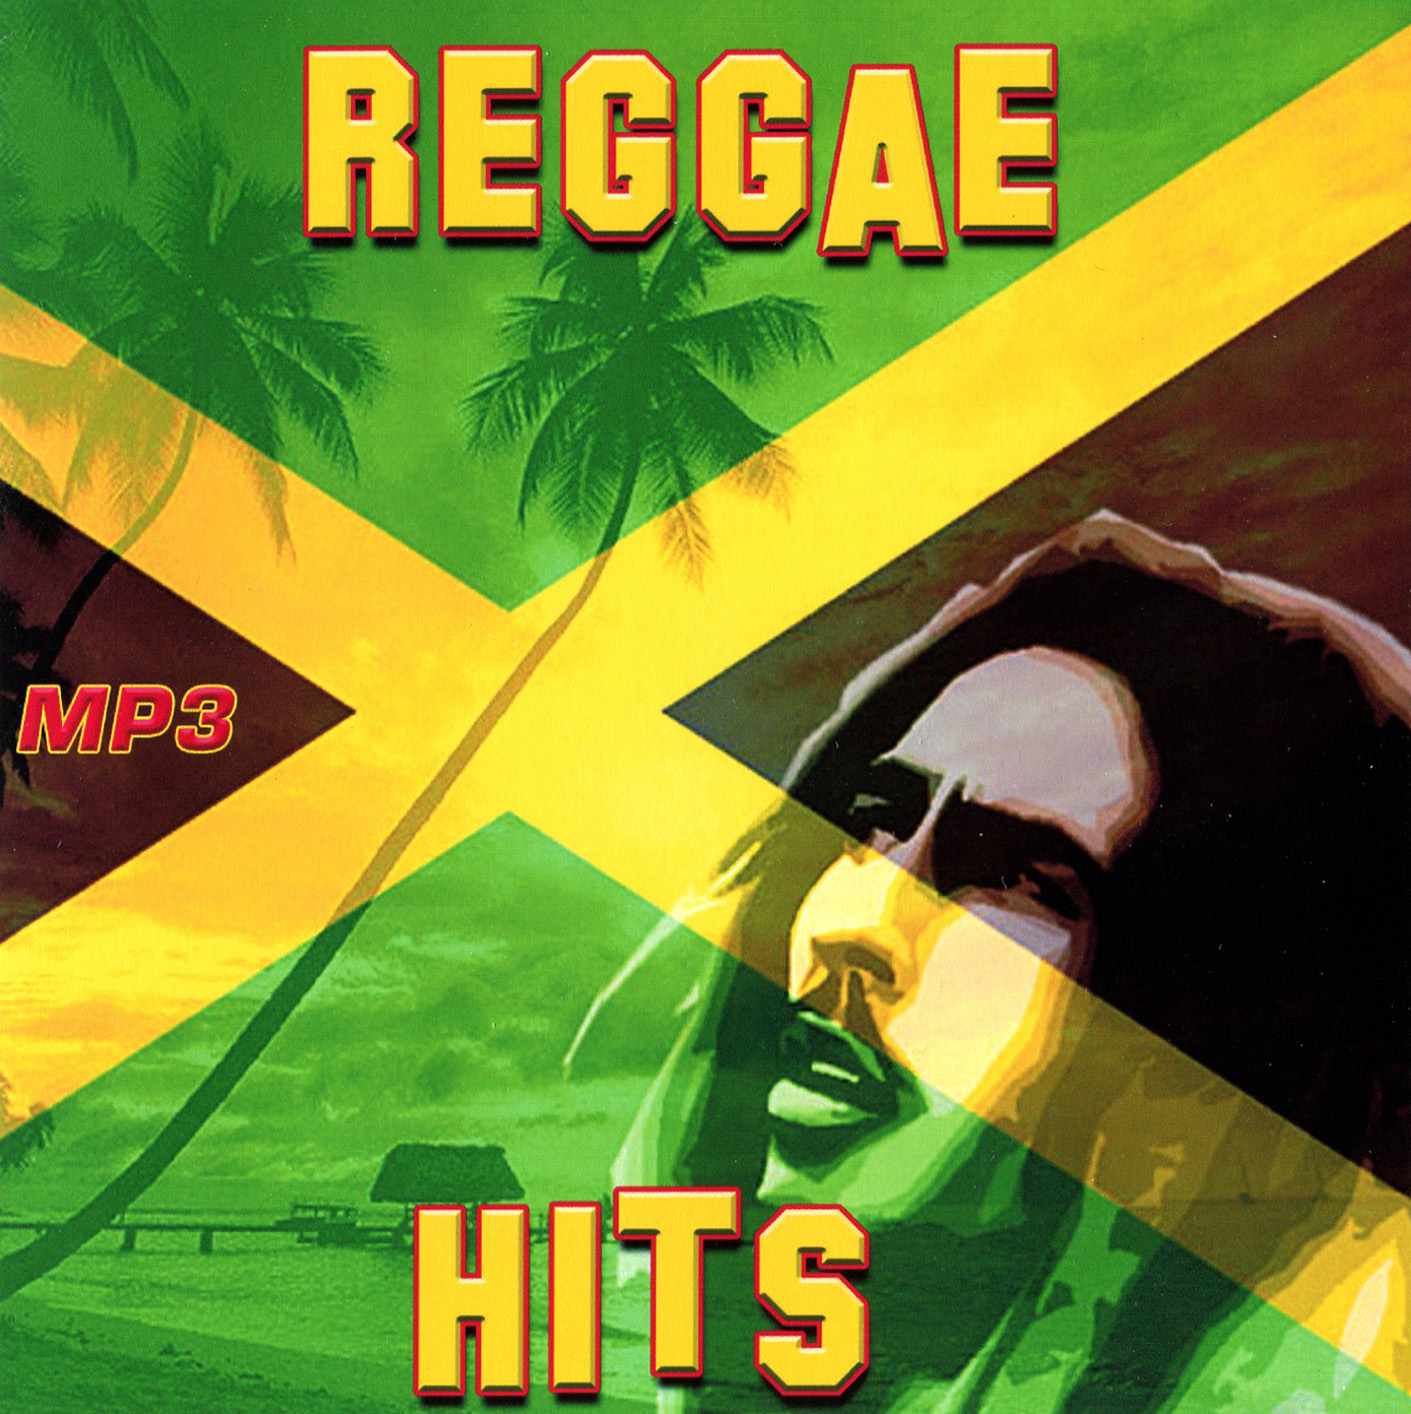 Reggae hits [mp3]